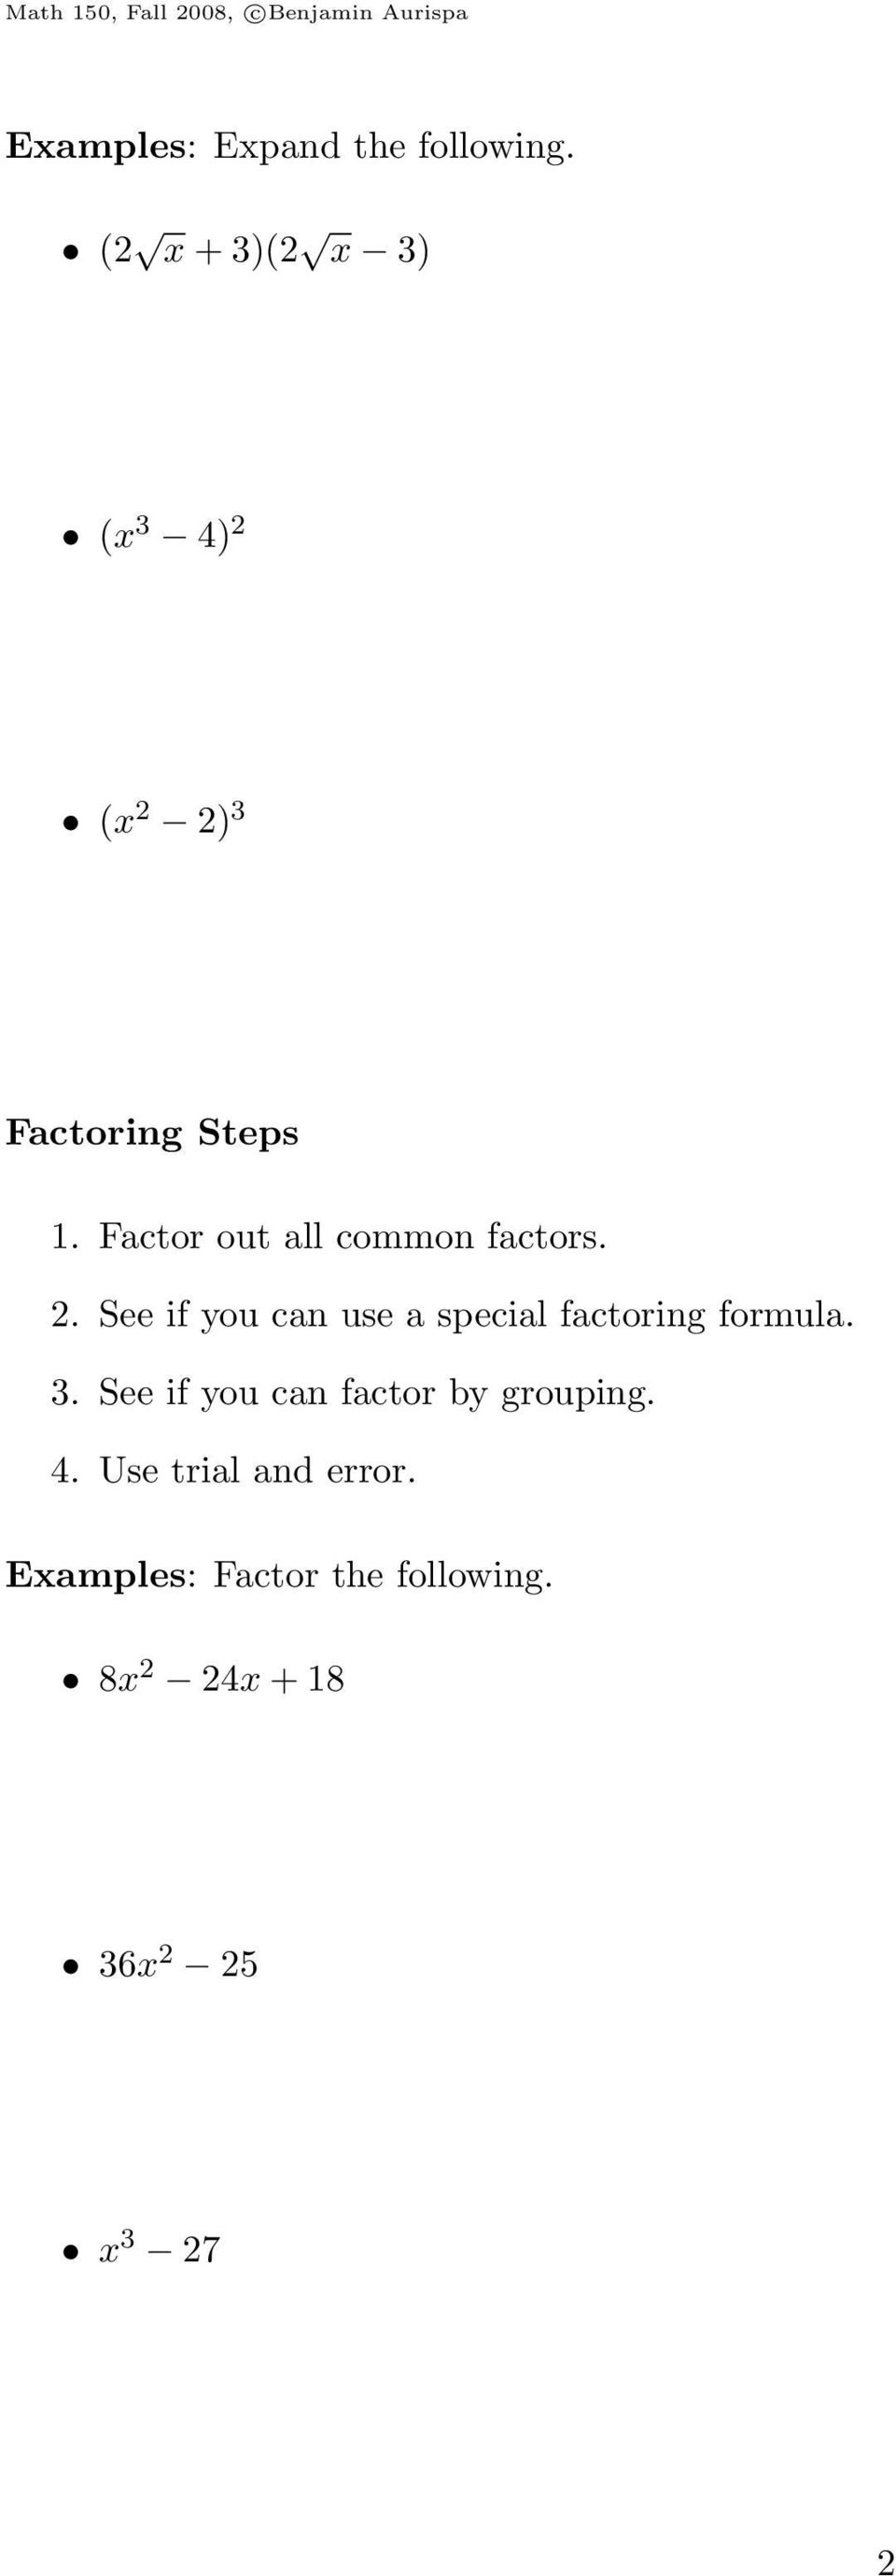 Factor out all common factors. 2.